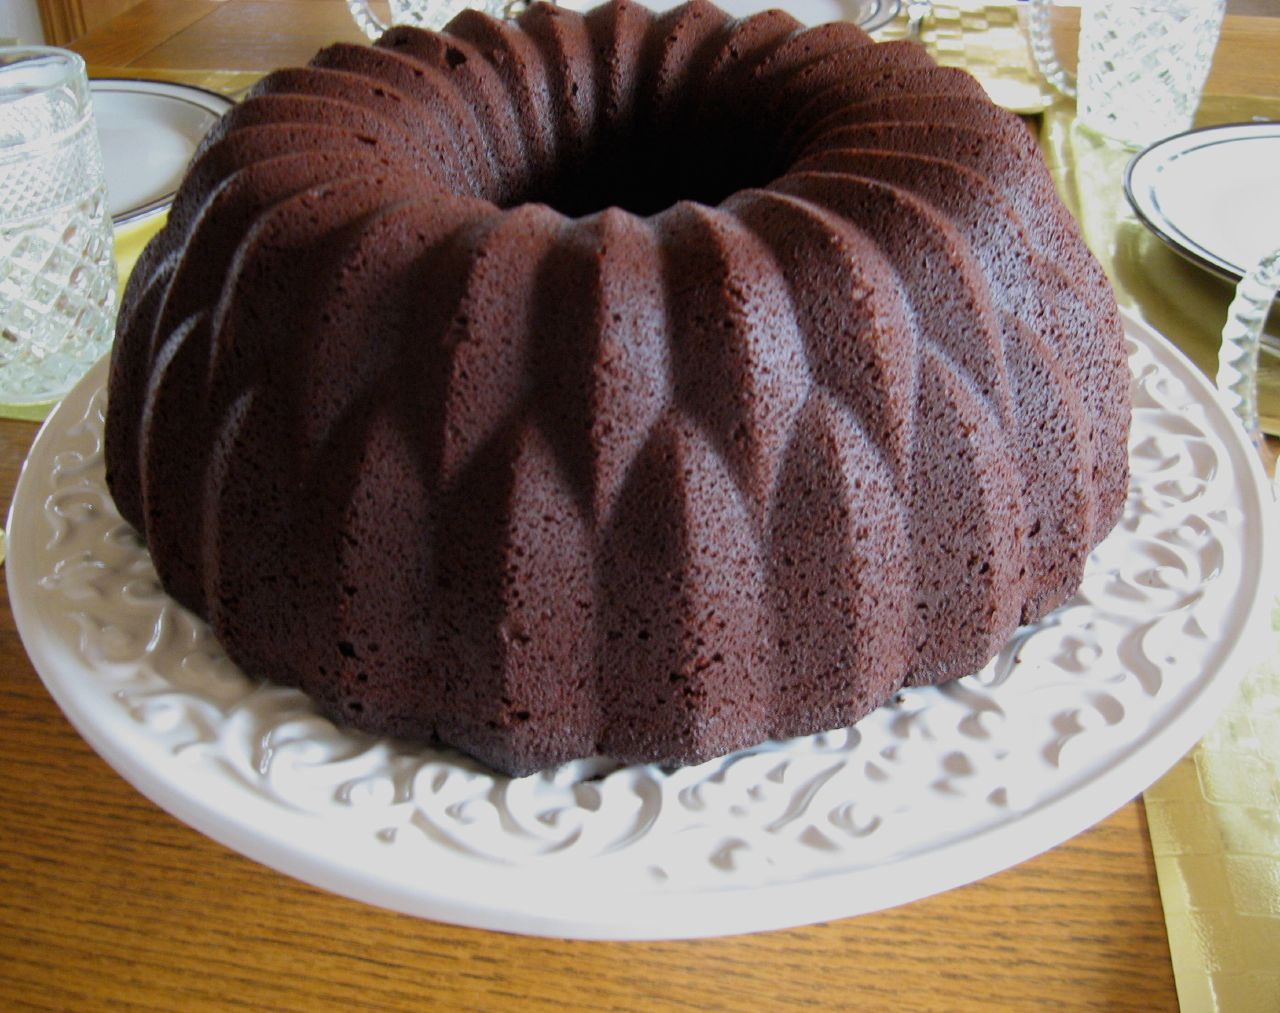 Chiffon Cake In Bundt Pan